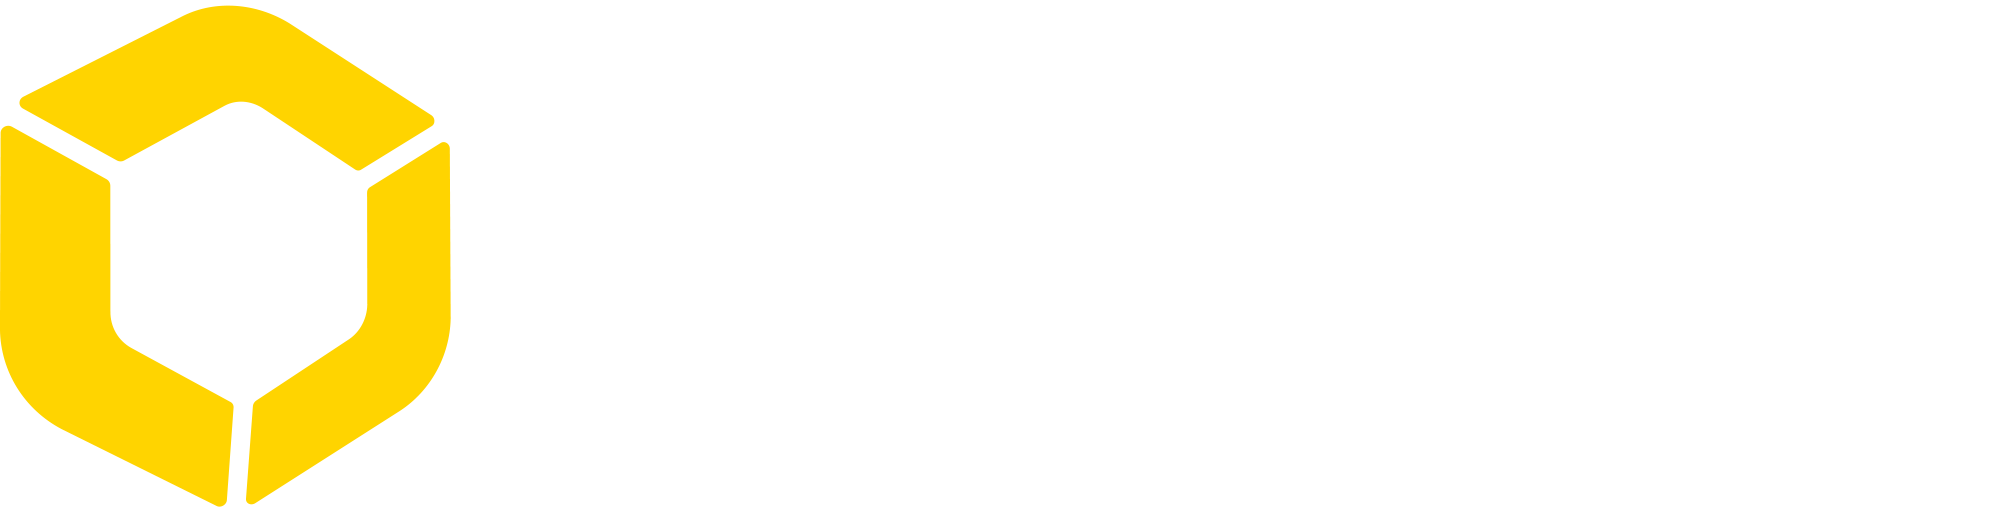 Southern Mining Electrical Contractors